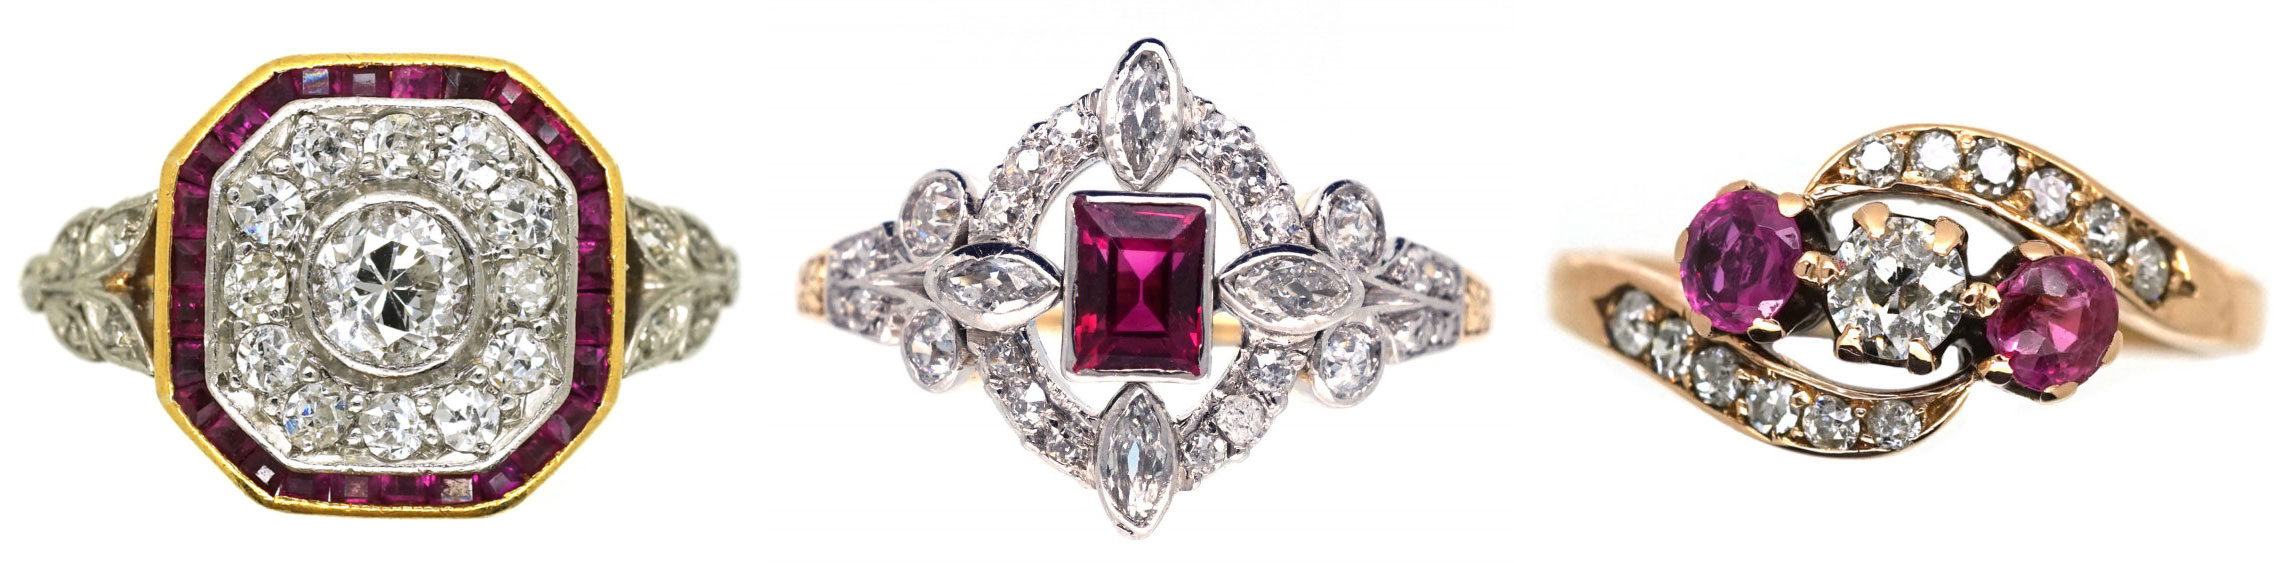 Ruby rings come in a variety of designs